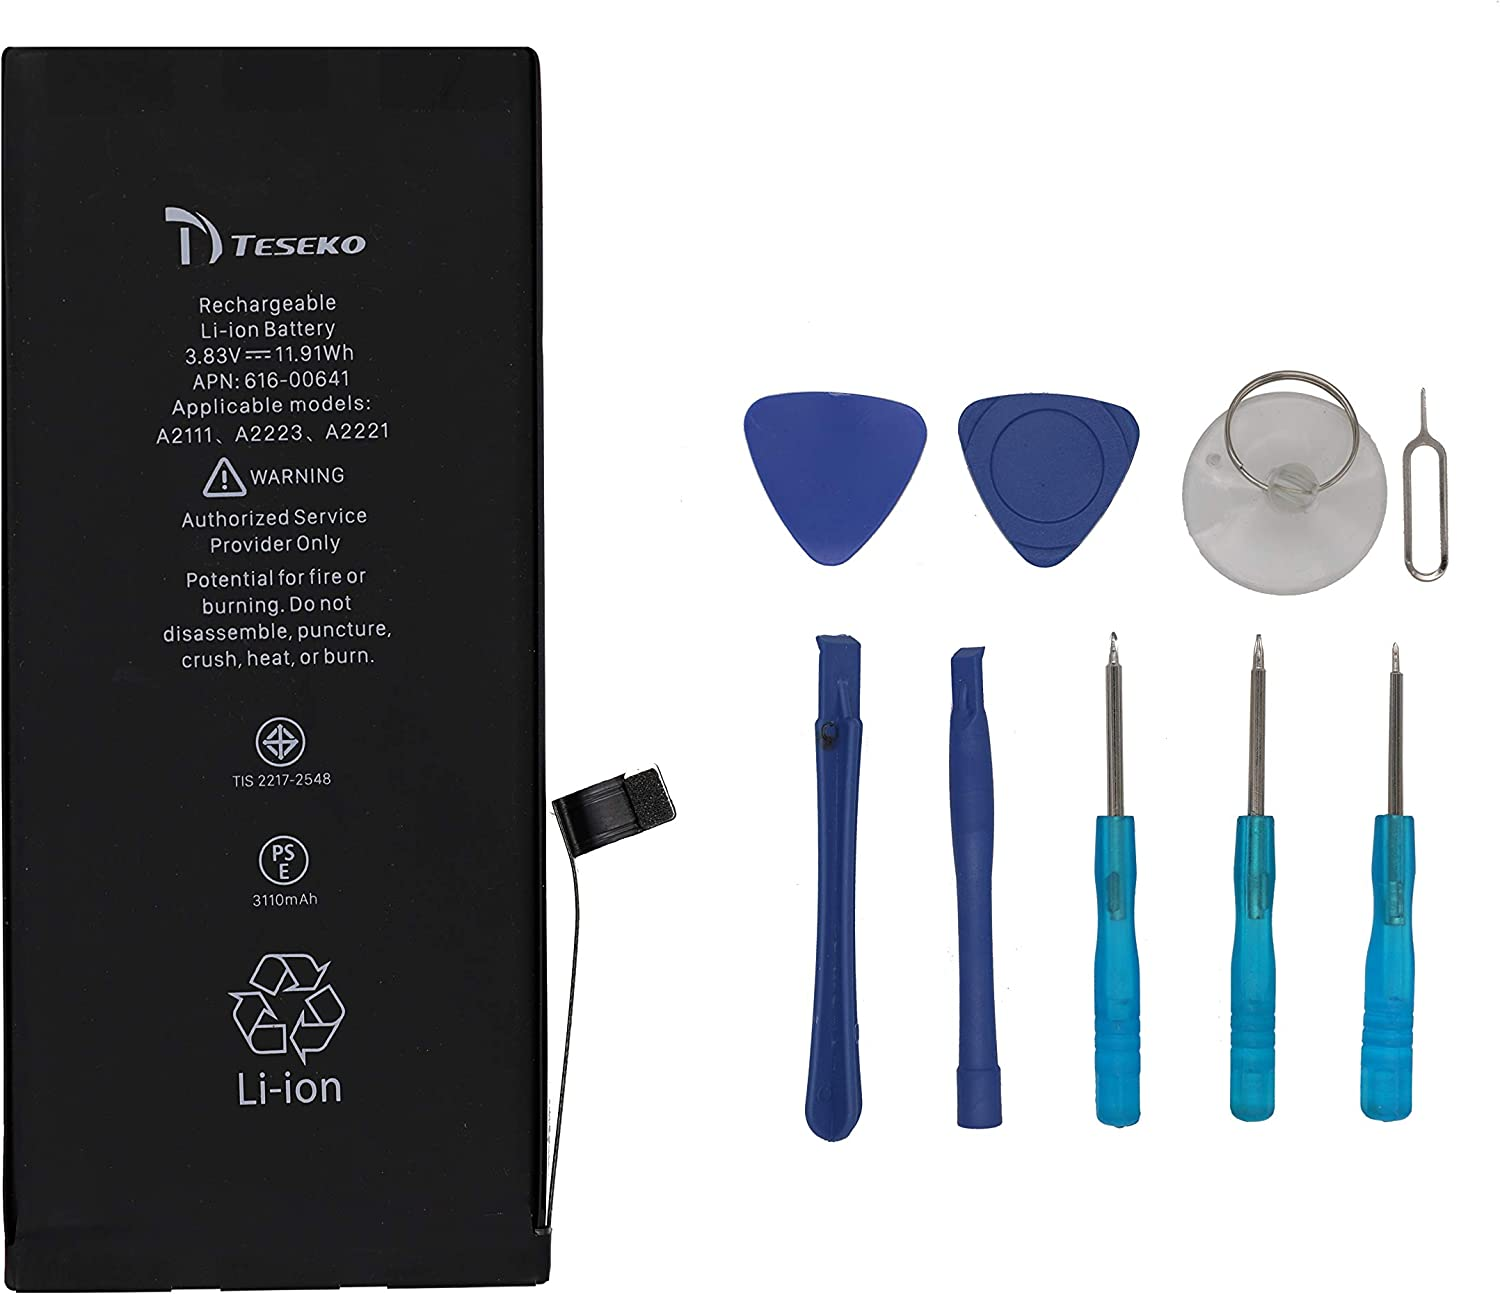 Teseko Battery Replacement for iPhone 11 (A2111、A2223、A2221)+Professional Tool Kit…